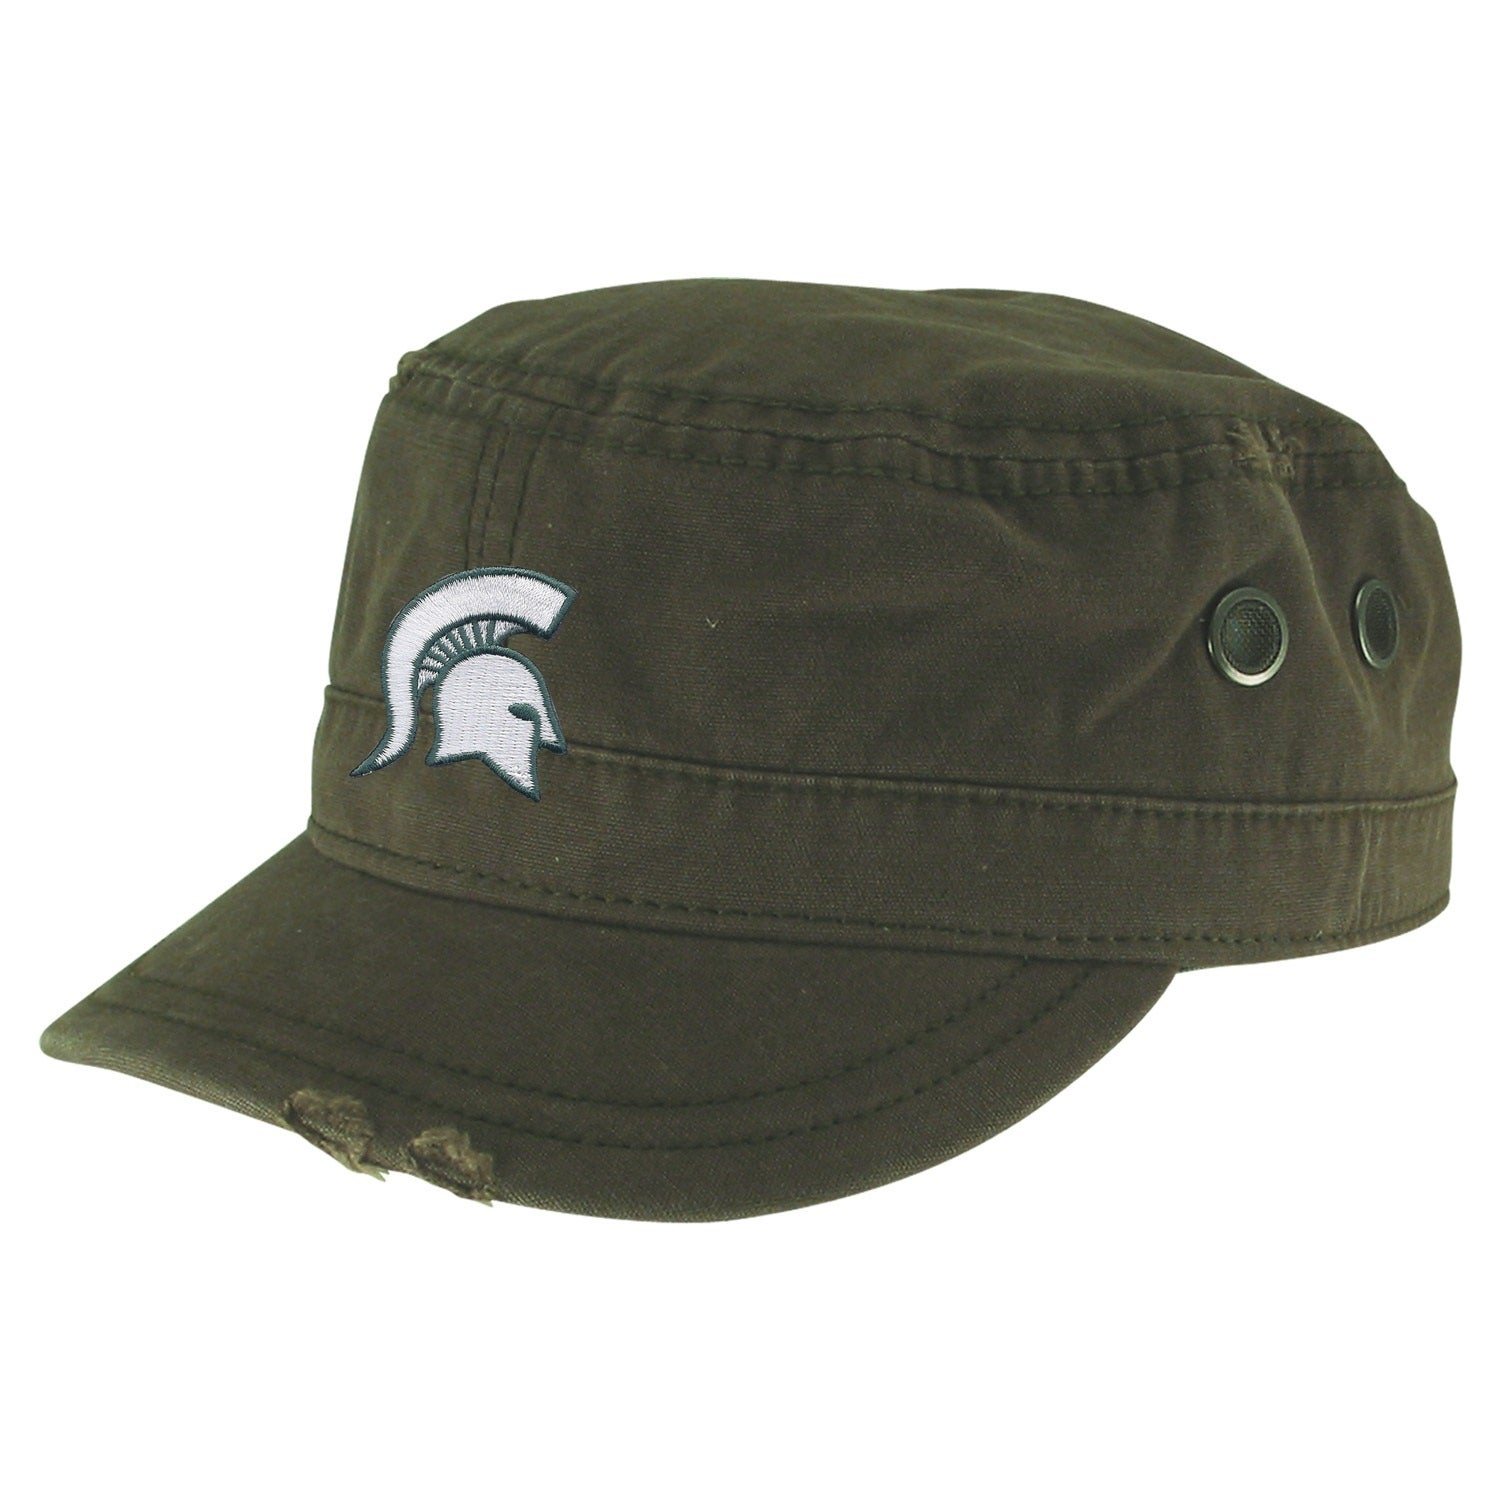 2ab504e571d Shop Michigan State University Sarge Military Hat - Free Shipping On Orders  Over  45 - Overstock - 20701846